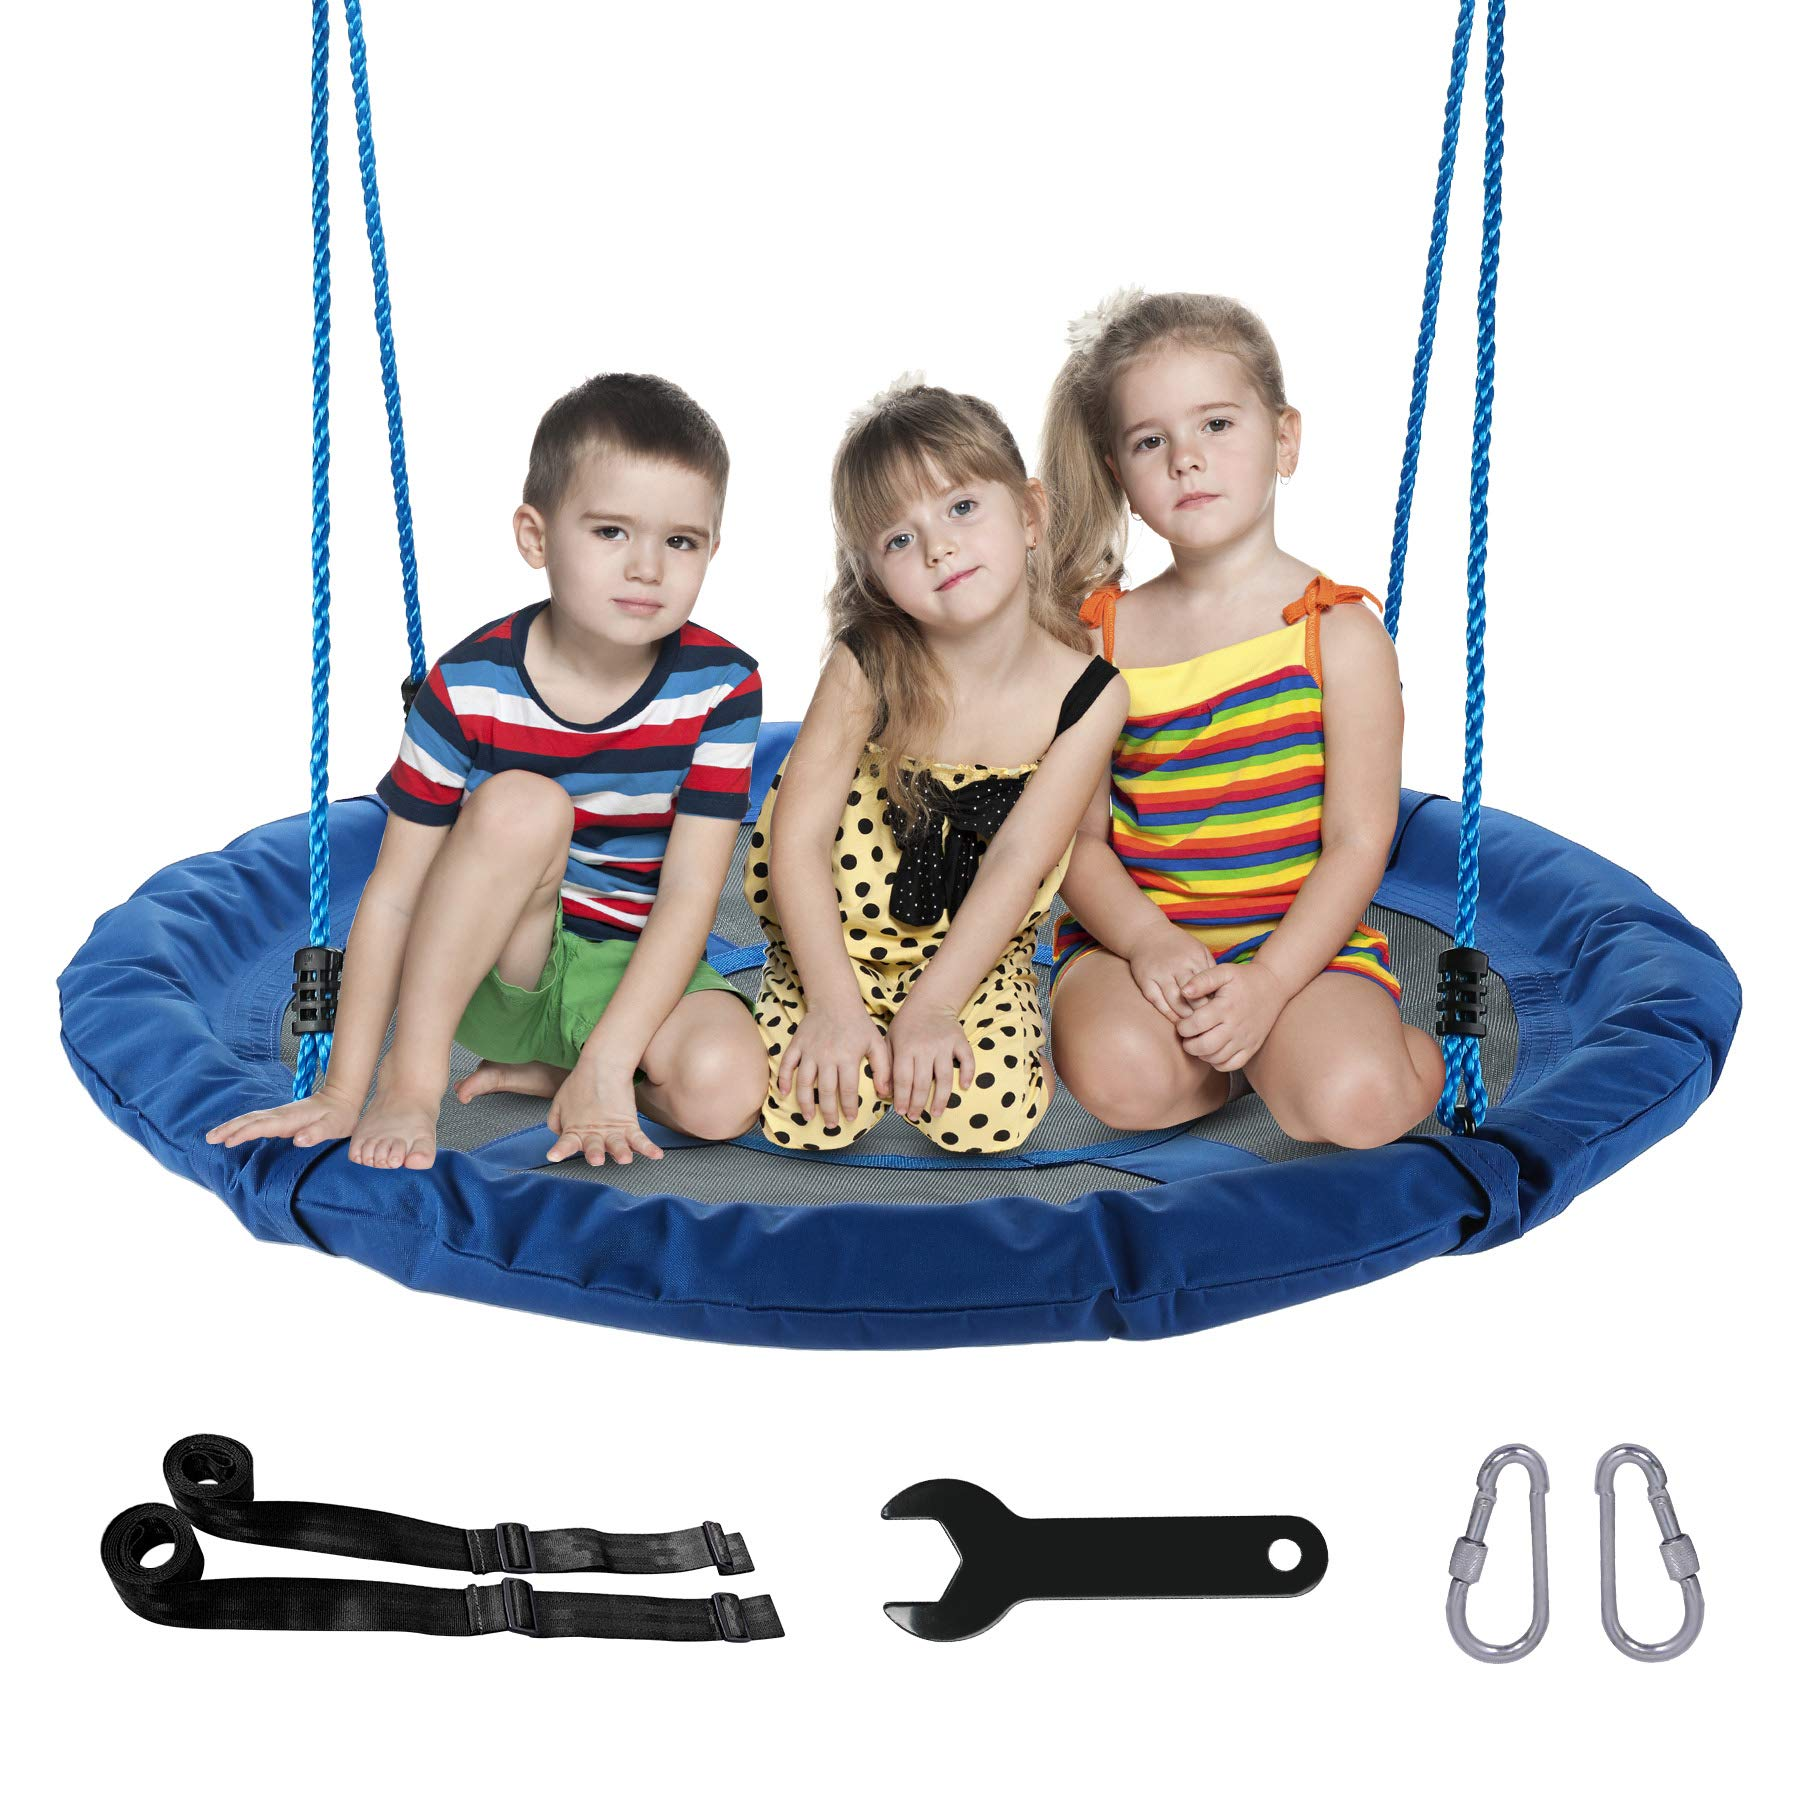 CO-Z Saucer Tree Swing Large 40 Inches Round Saucer Swing Set for Tree with Steel Frame and 2 Adjustable Hanging Straps (Blue) by CO-Z